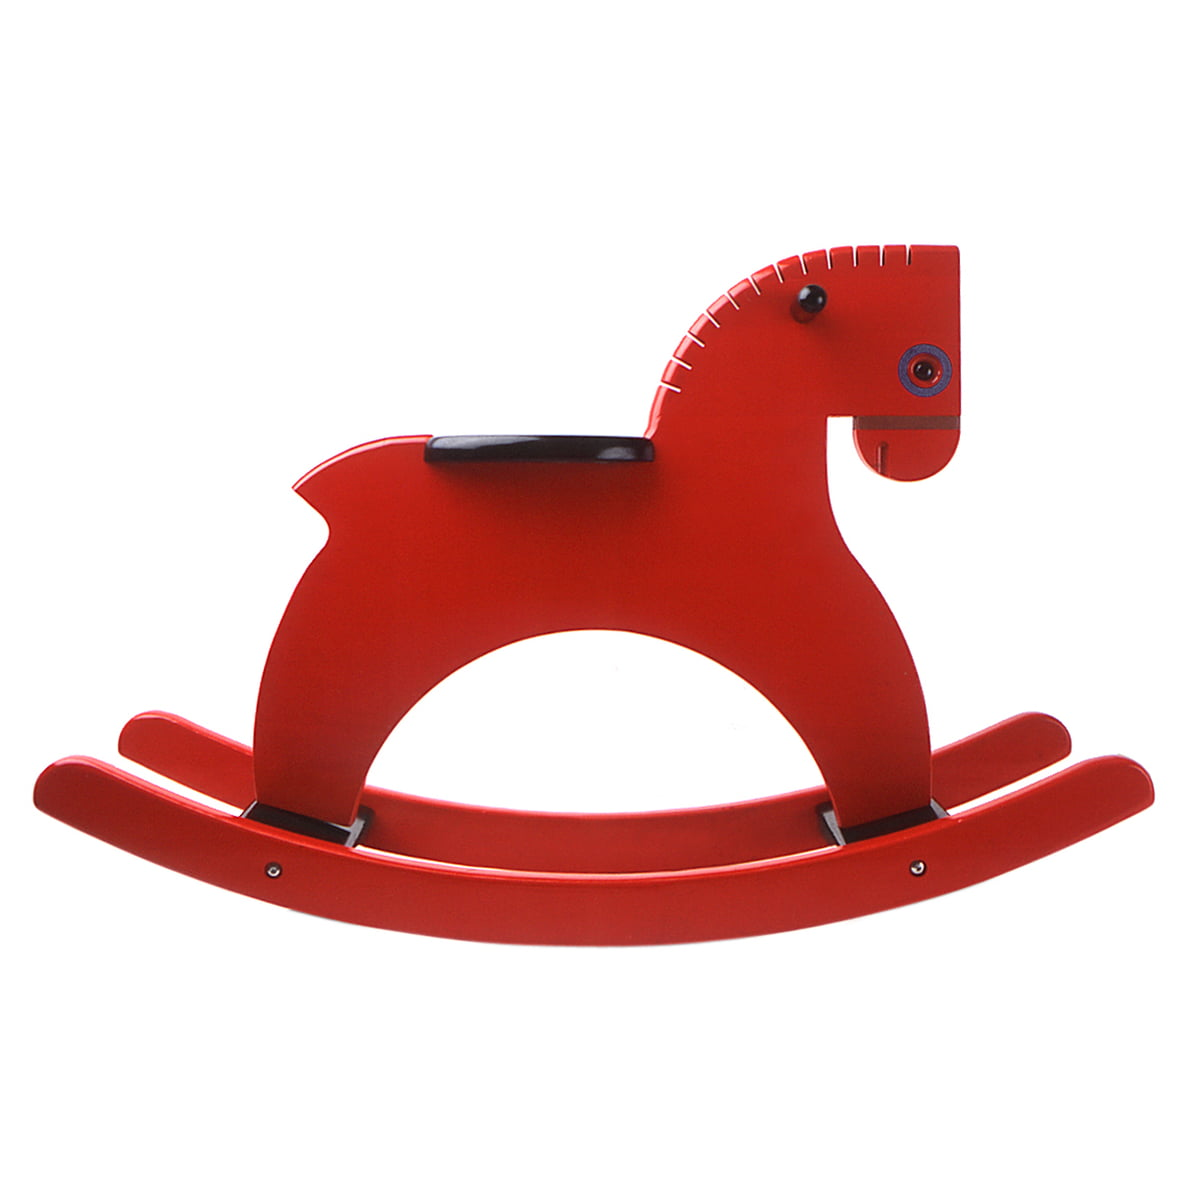 the rocking horse by playsam in the shop - playsam  rocking horse red